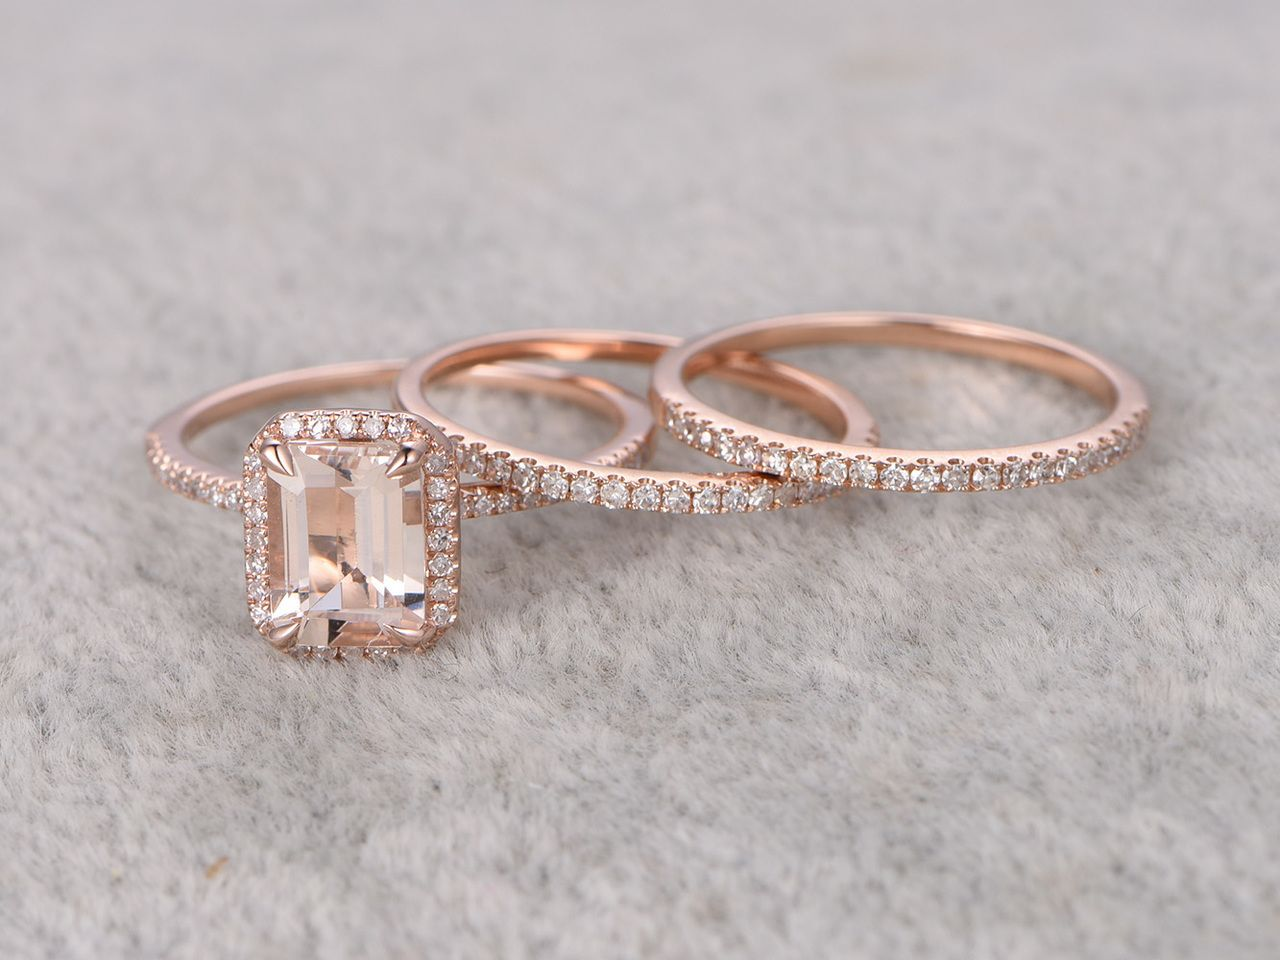 12 carat emerald cut morganite wedding set diamond bridal ring 14k rose gold thin eternity band - Morganite Wedding Ring